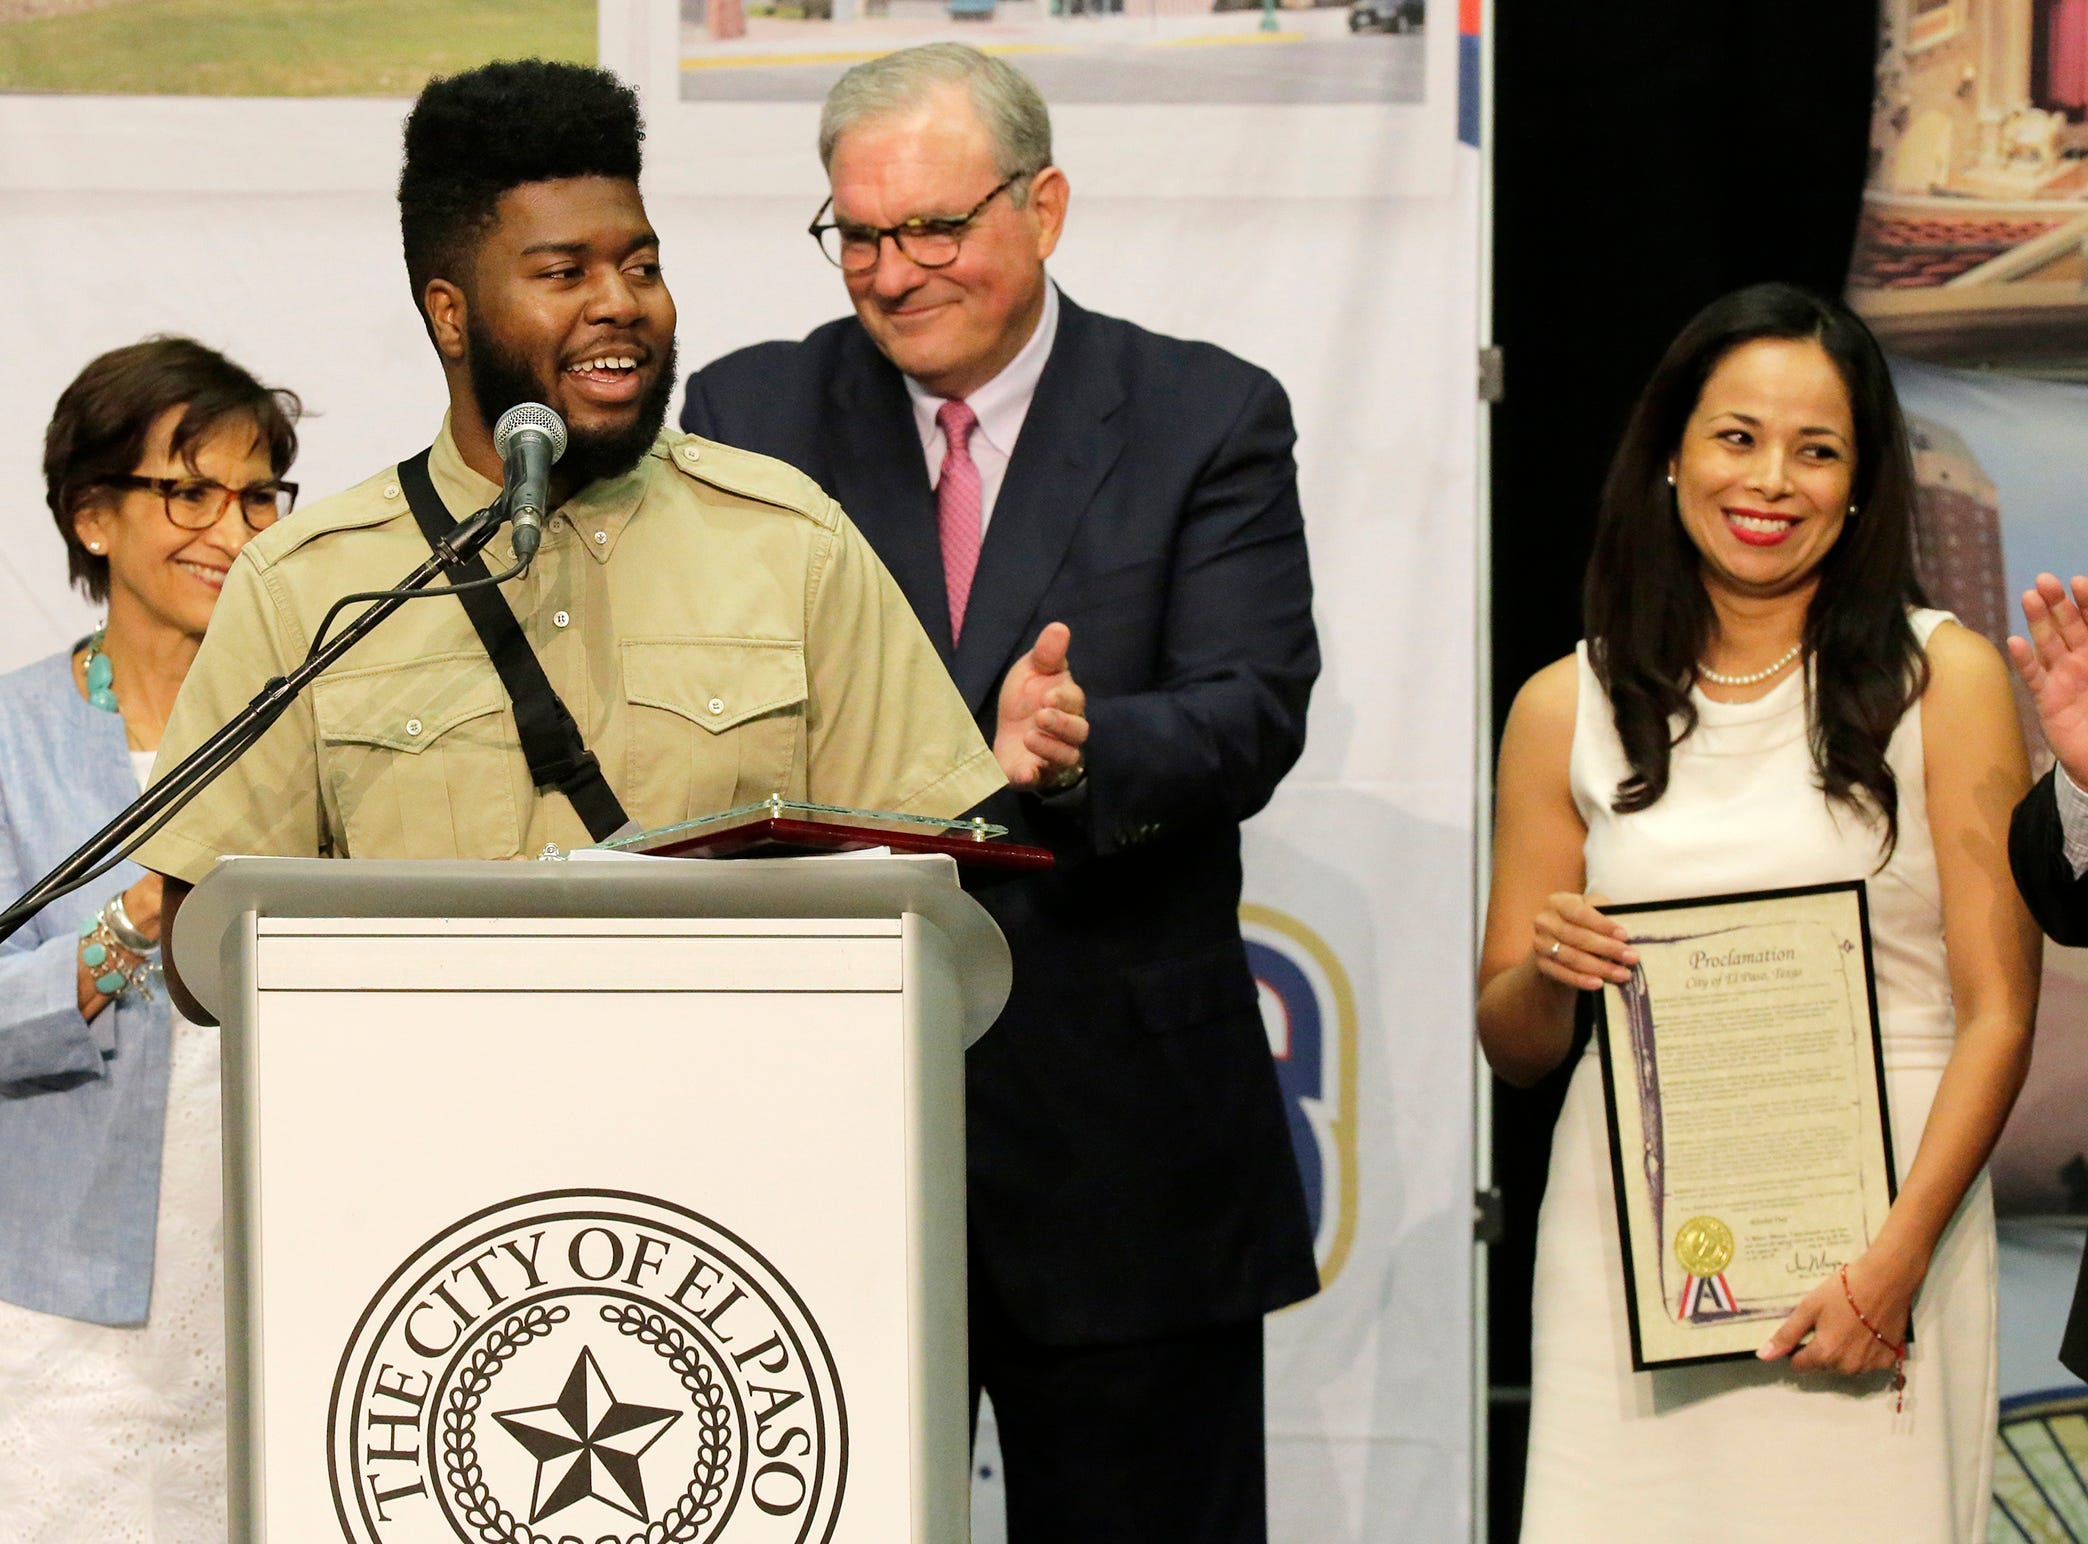 Recording artist and El Pasoan Khalid addresses the crowd at the El Paso Convention Center Thursday afternoon after being presented the Key to the City by El Paso Mayor Dee Margo and member of city council, shortly after Margo gave his first State of the City address.